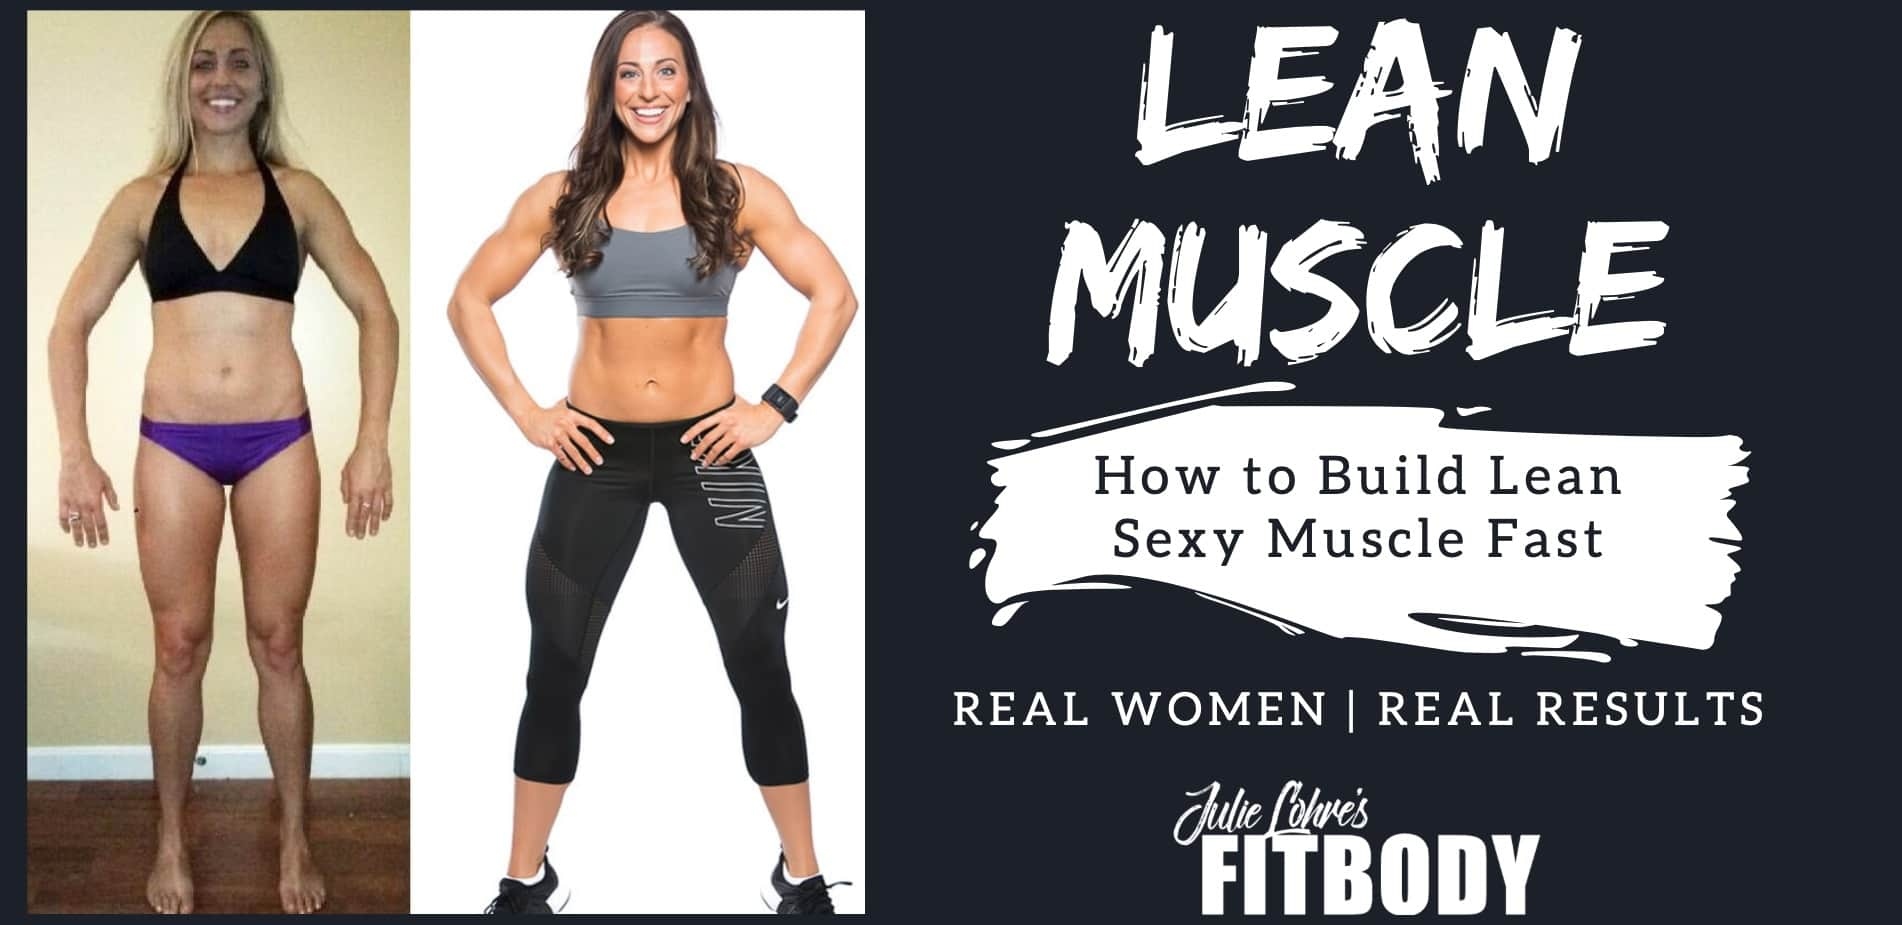 How to build lean muscle for women